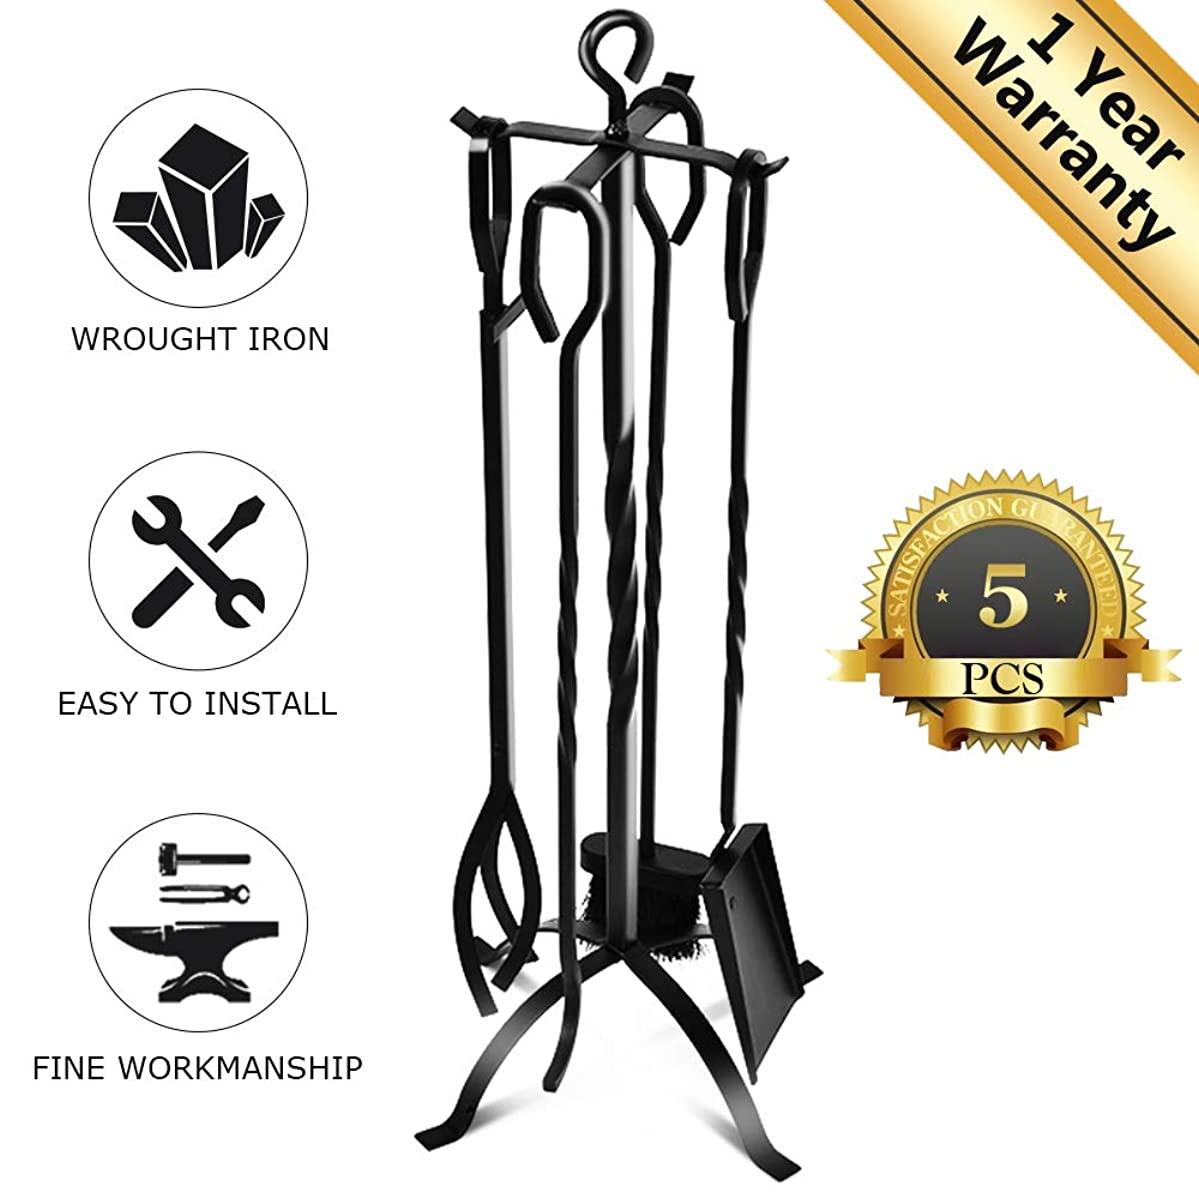 VIVREAL Fireplace Tool Set, Heavy Duty 5 Pieces Kit for Home, Wrought Iron Fireset with Poker, Tongs, Shovel Brush Center Stand-Easy to Assemble, Black